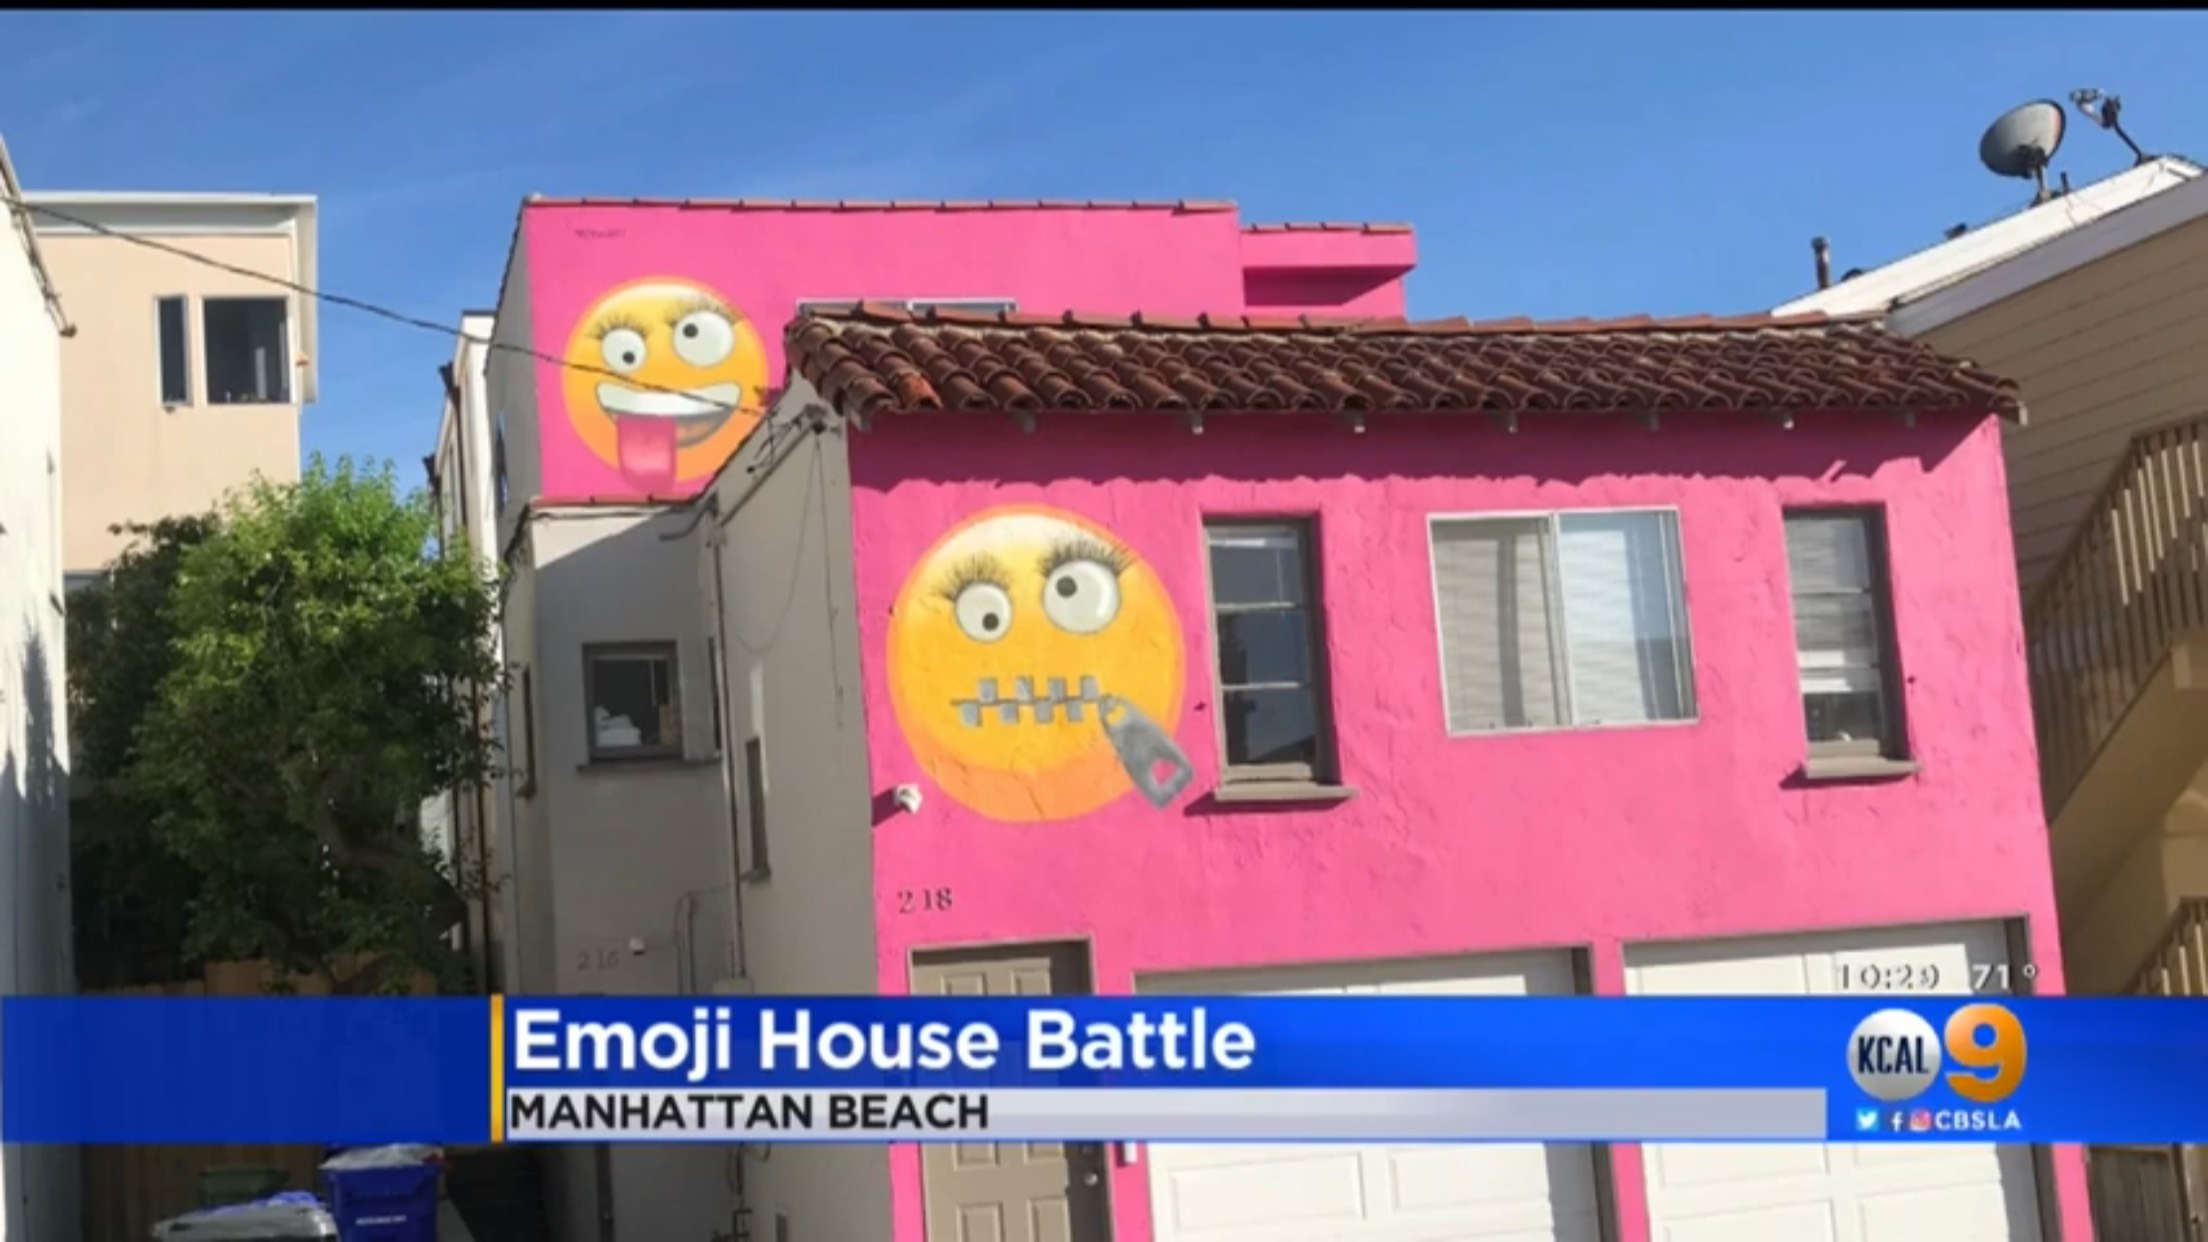 Emoji House Battle